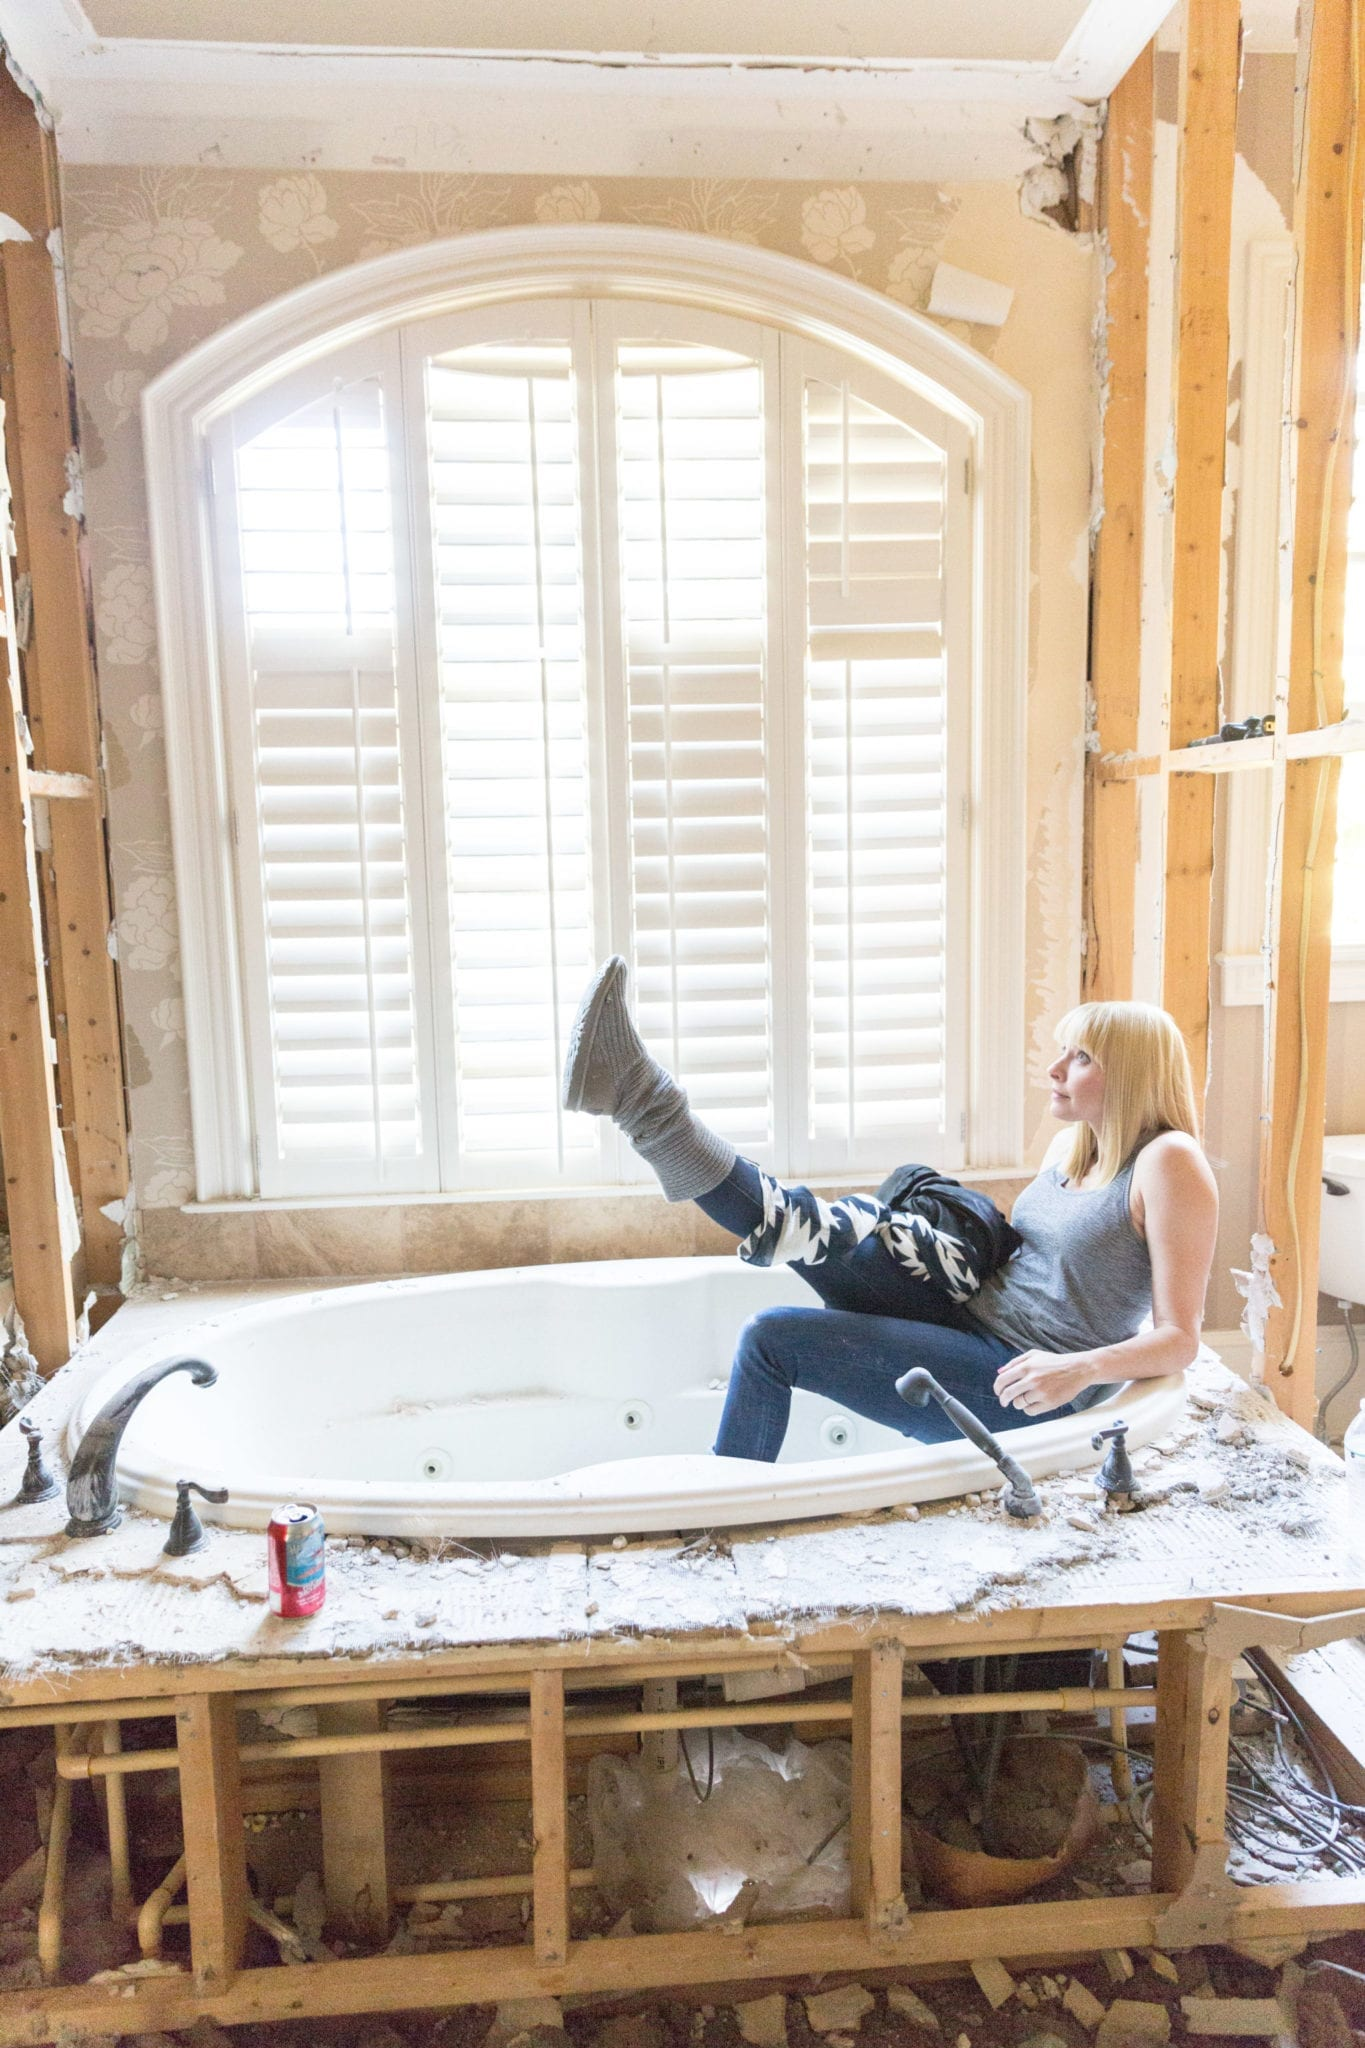 Renovating tips from a newbie. Tips and lessons I've learned when redesigning my house!